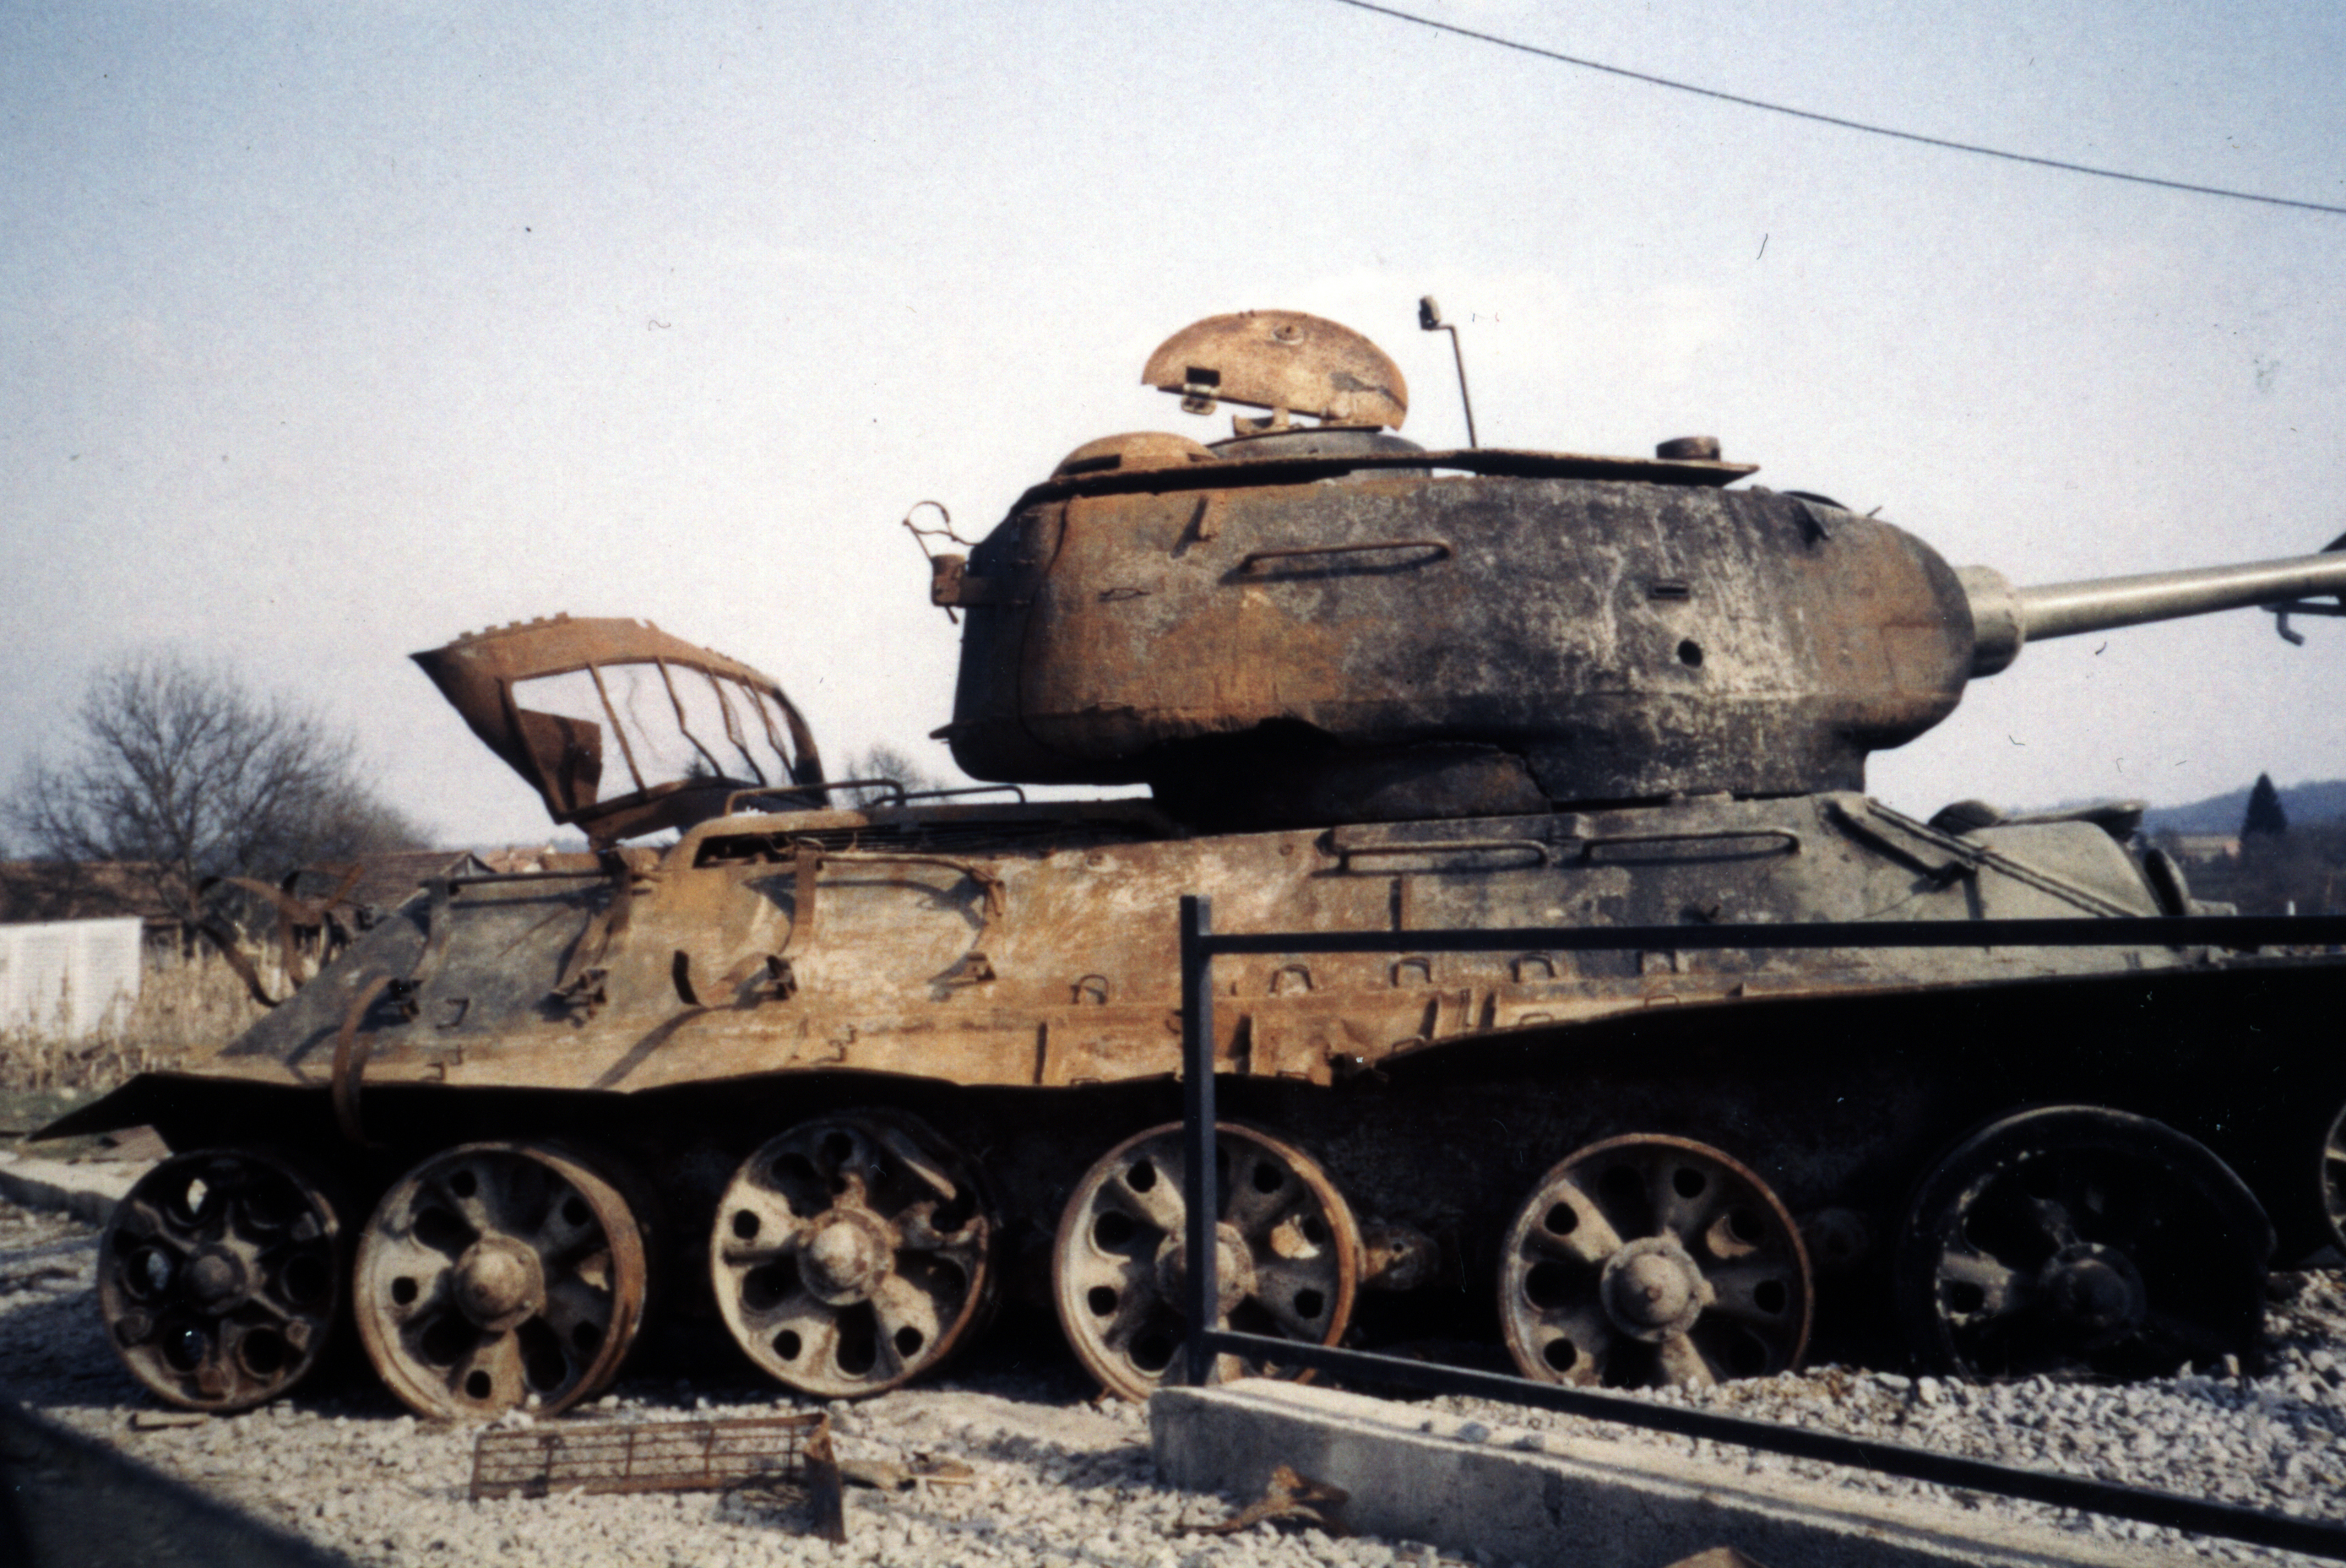 tiger helicopter with File A Destroyed T 34 85 Tank In Karlovac  Croatia on Temperate Grassland Animals as well Cat 6 likewise Elizabeth Tower also 1 16 German Koenigstiger Matorro Rc Modell in addition New Hondajet Successfully  pleted Its First Flight.